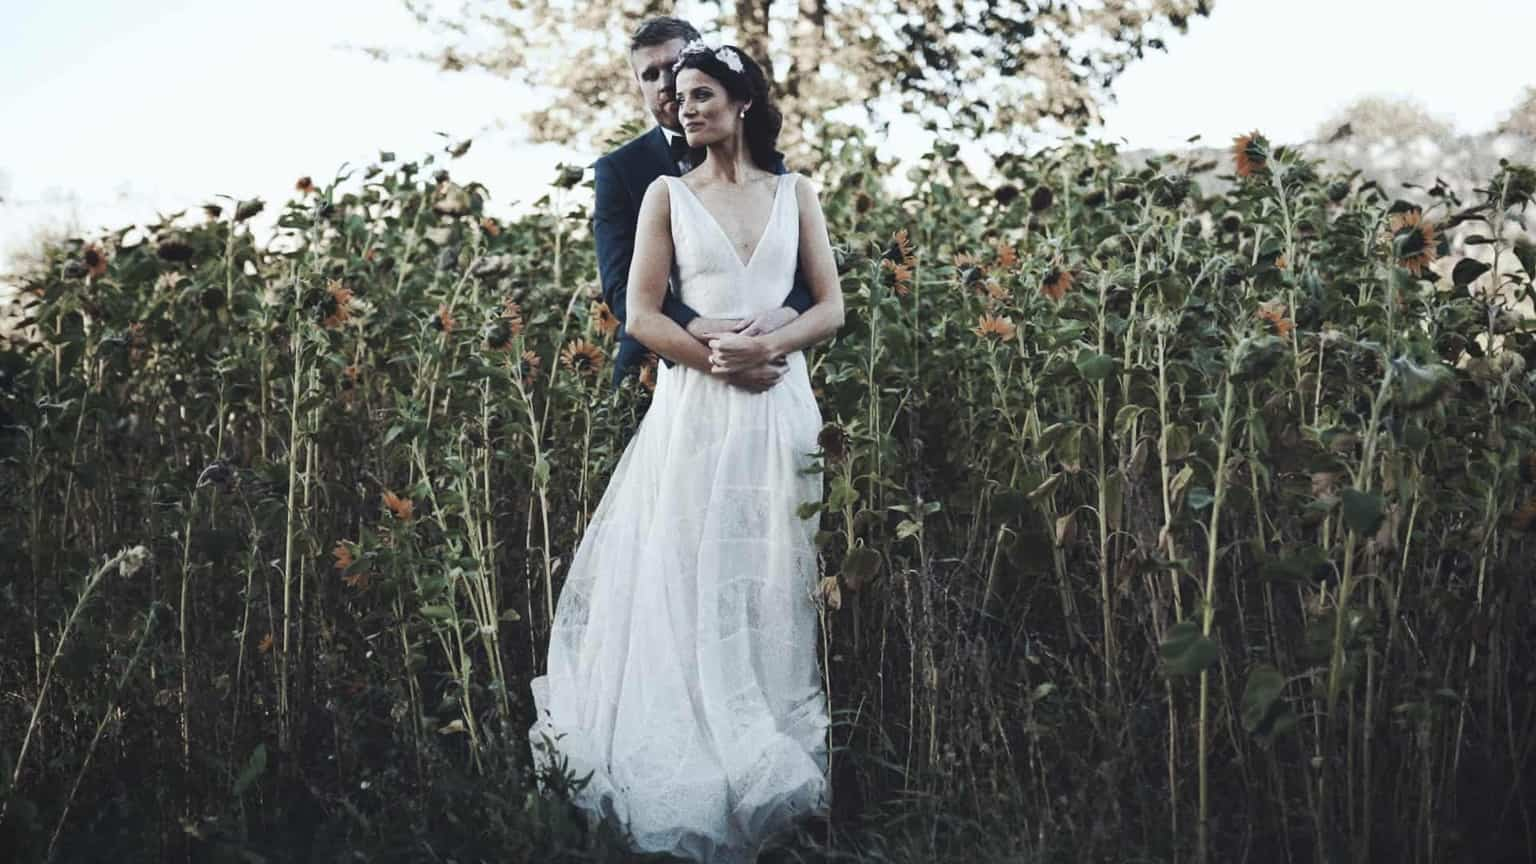 amazing picture of wedding couple and sunflowers at Cloughjordan